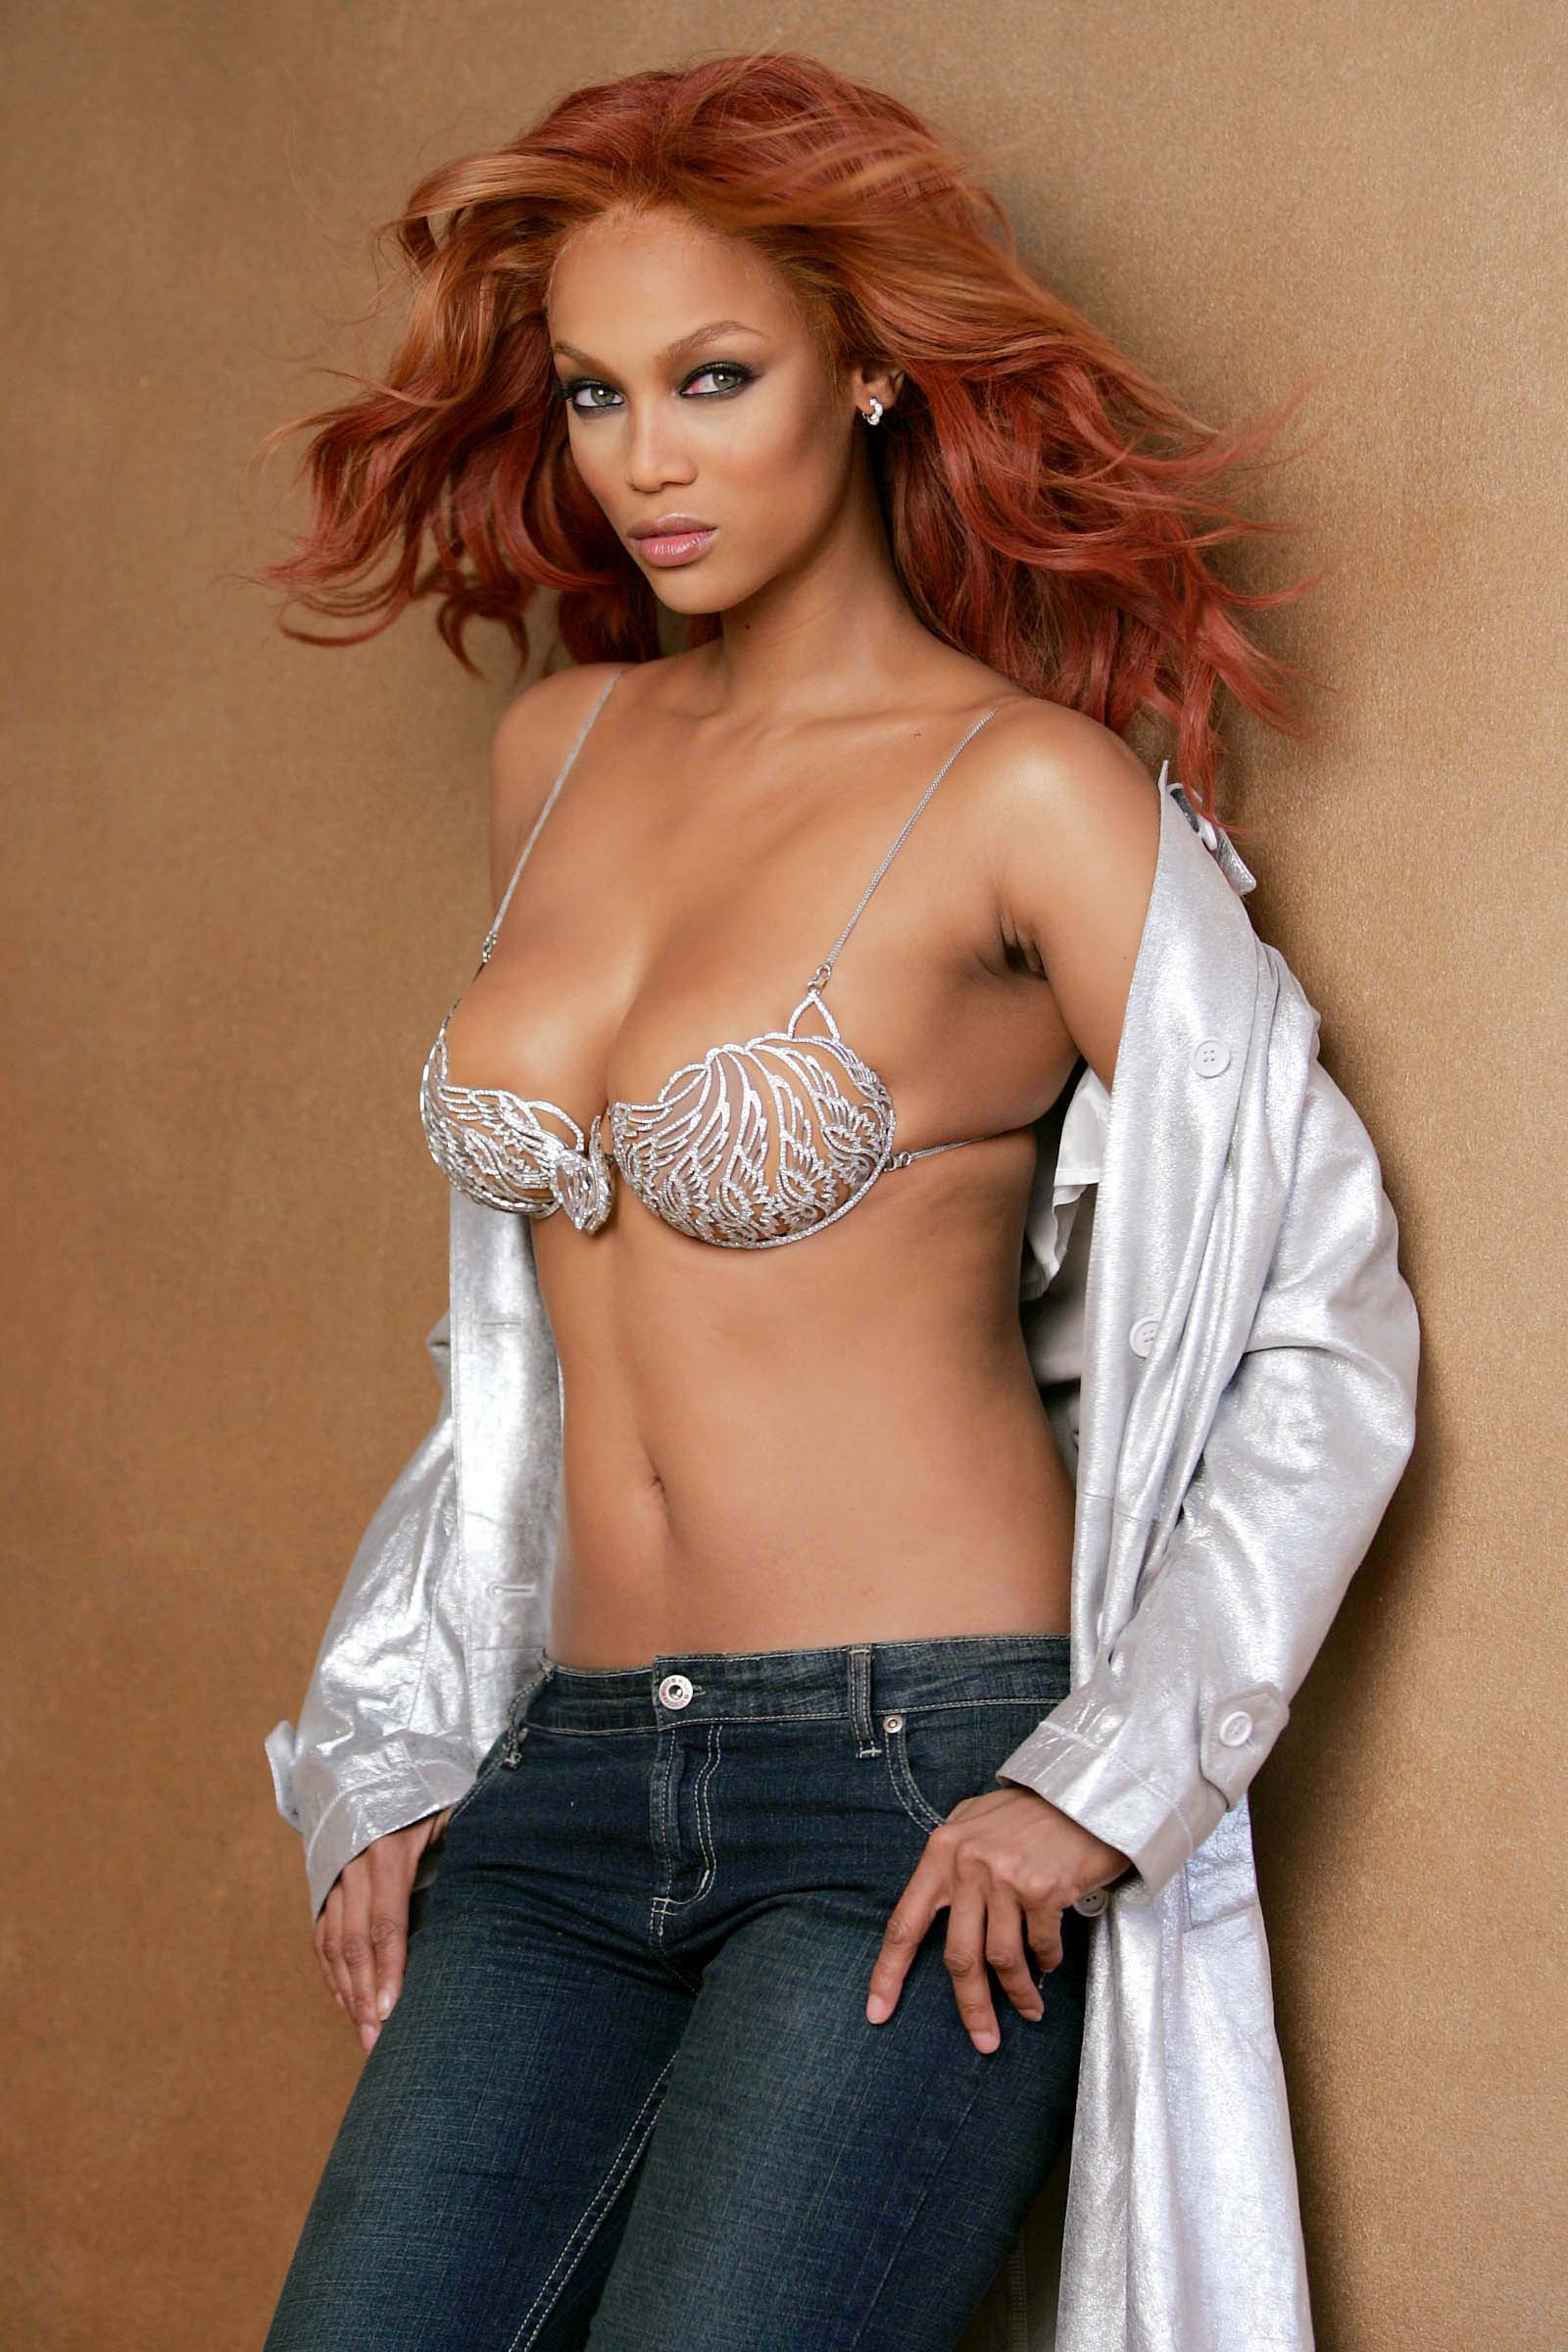 hot naked tyra banks pics